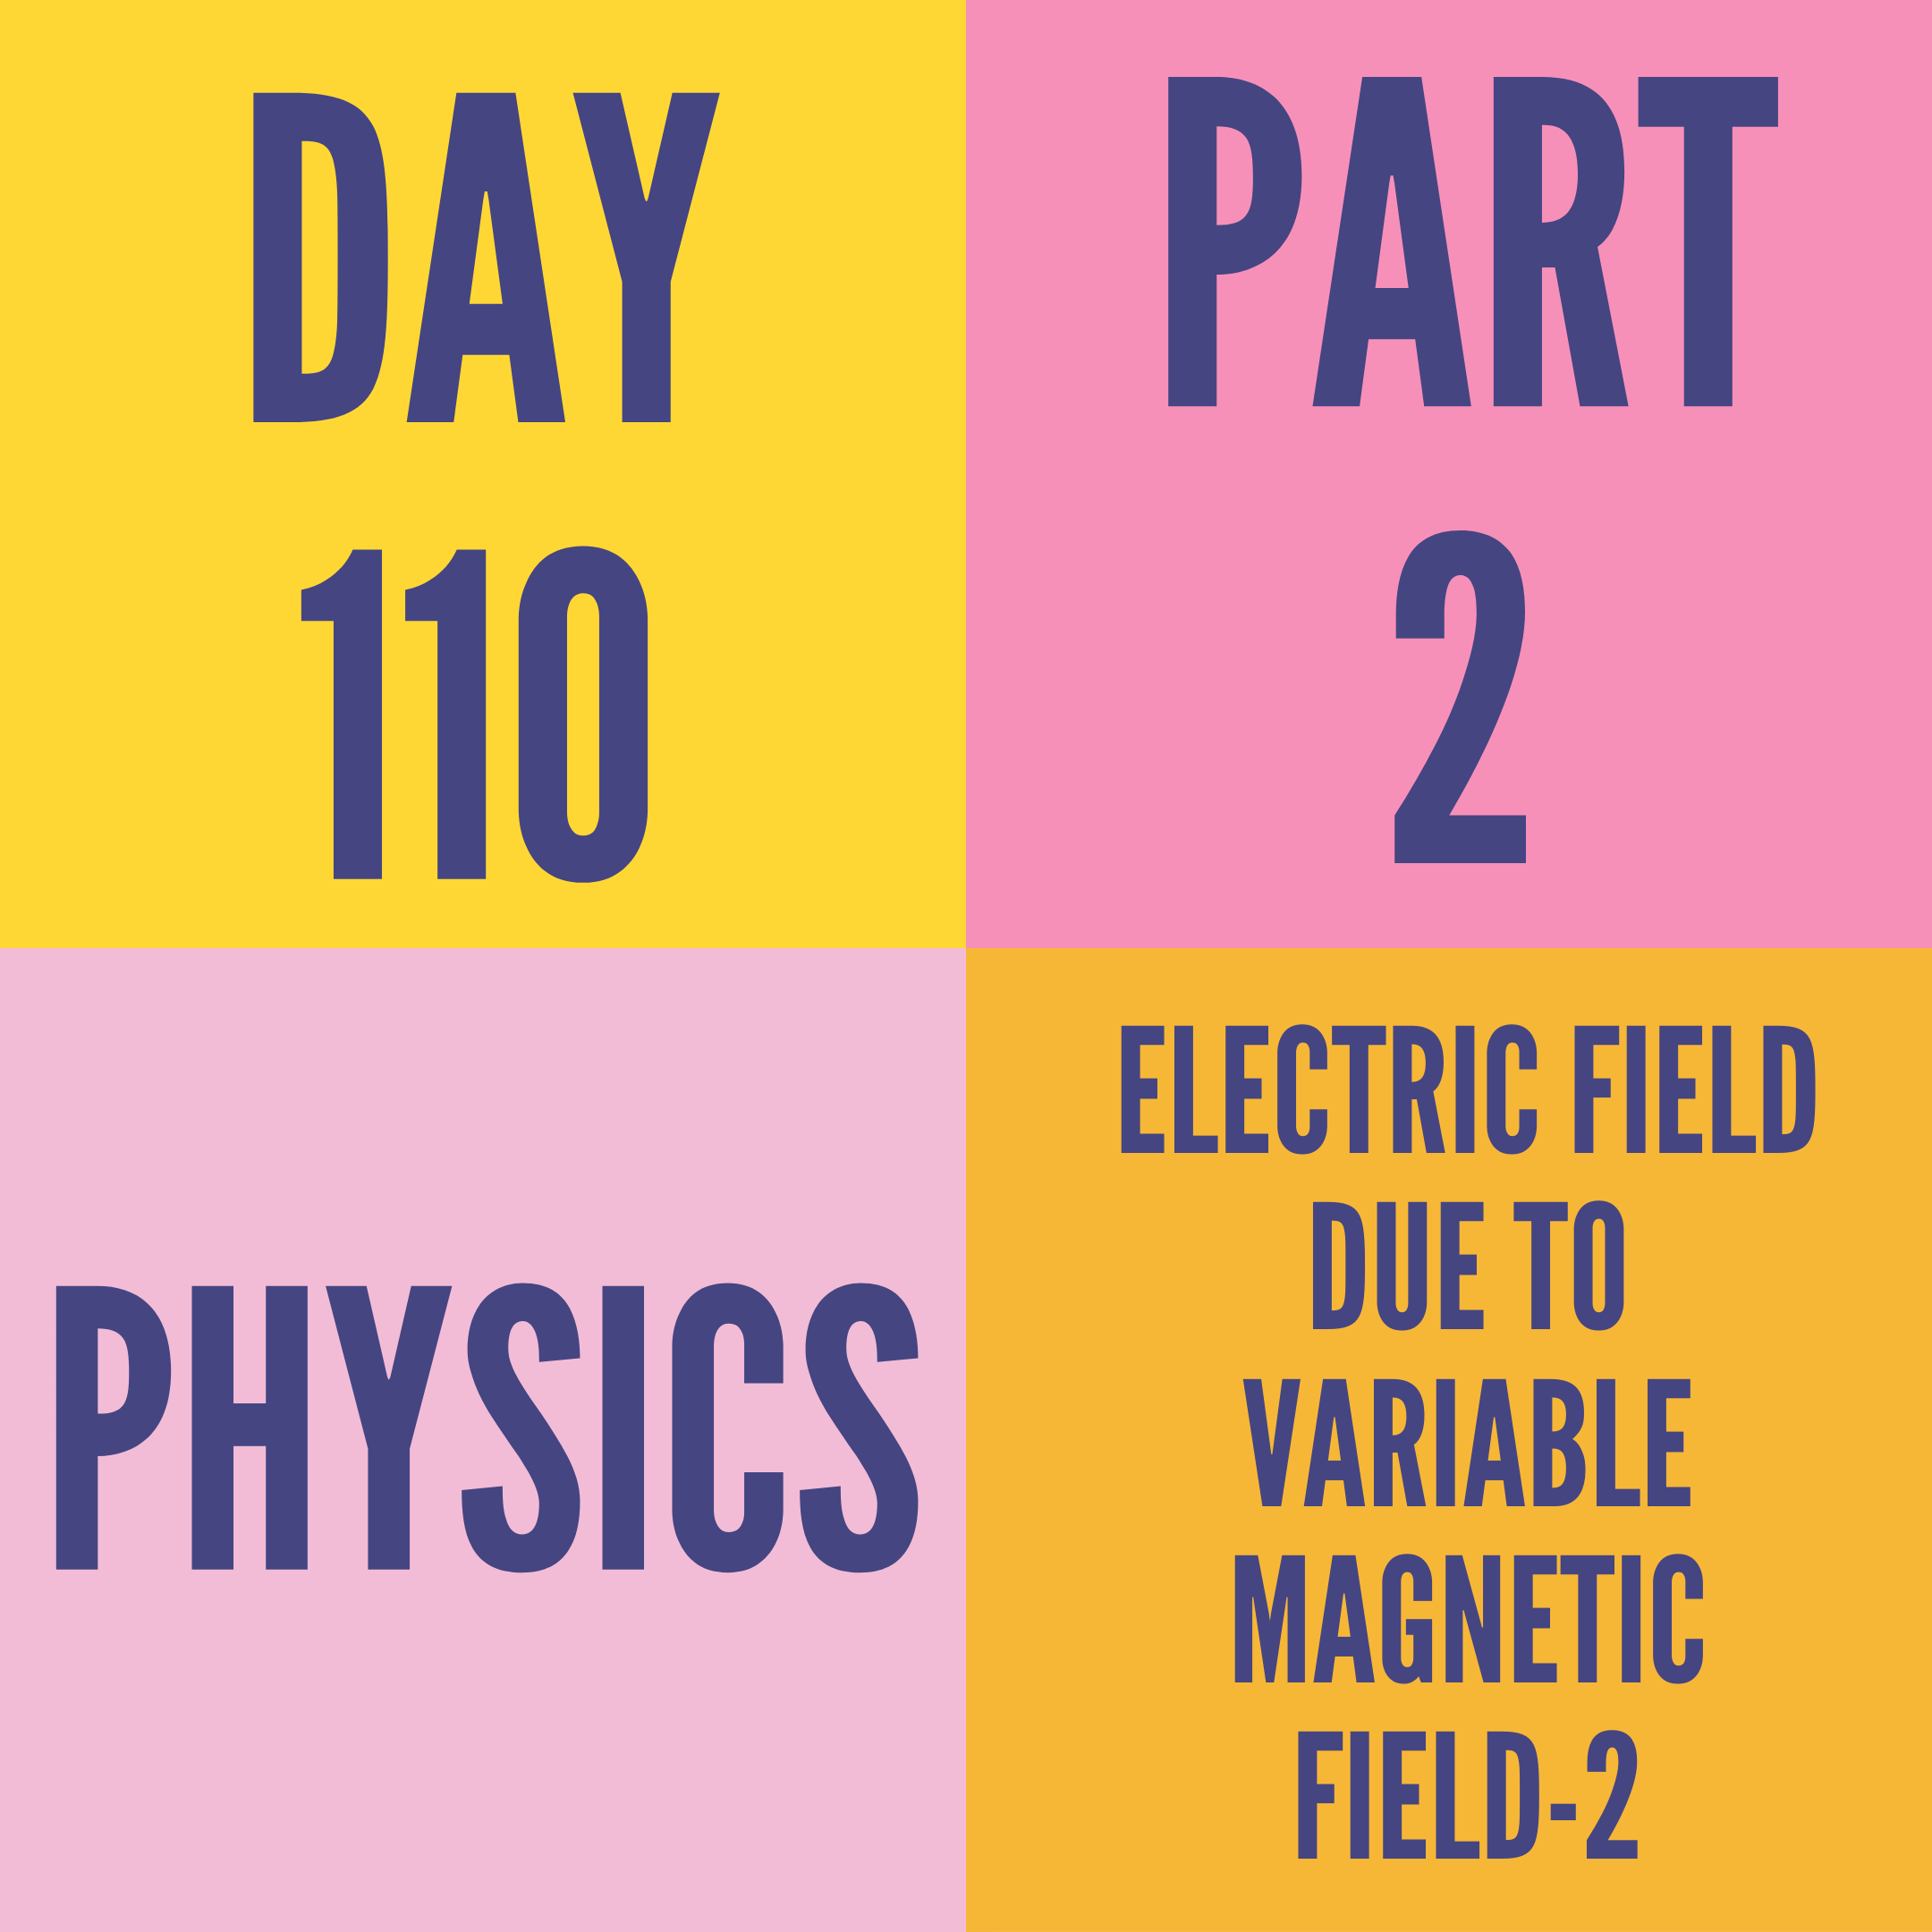 DAY-110 PART-2 ELECTRIC FIELD DUE TO VARIABLE MAGNETIC FIELD-2